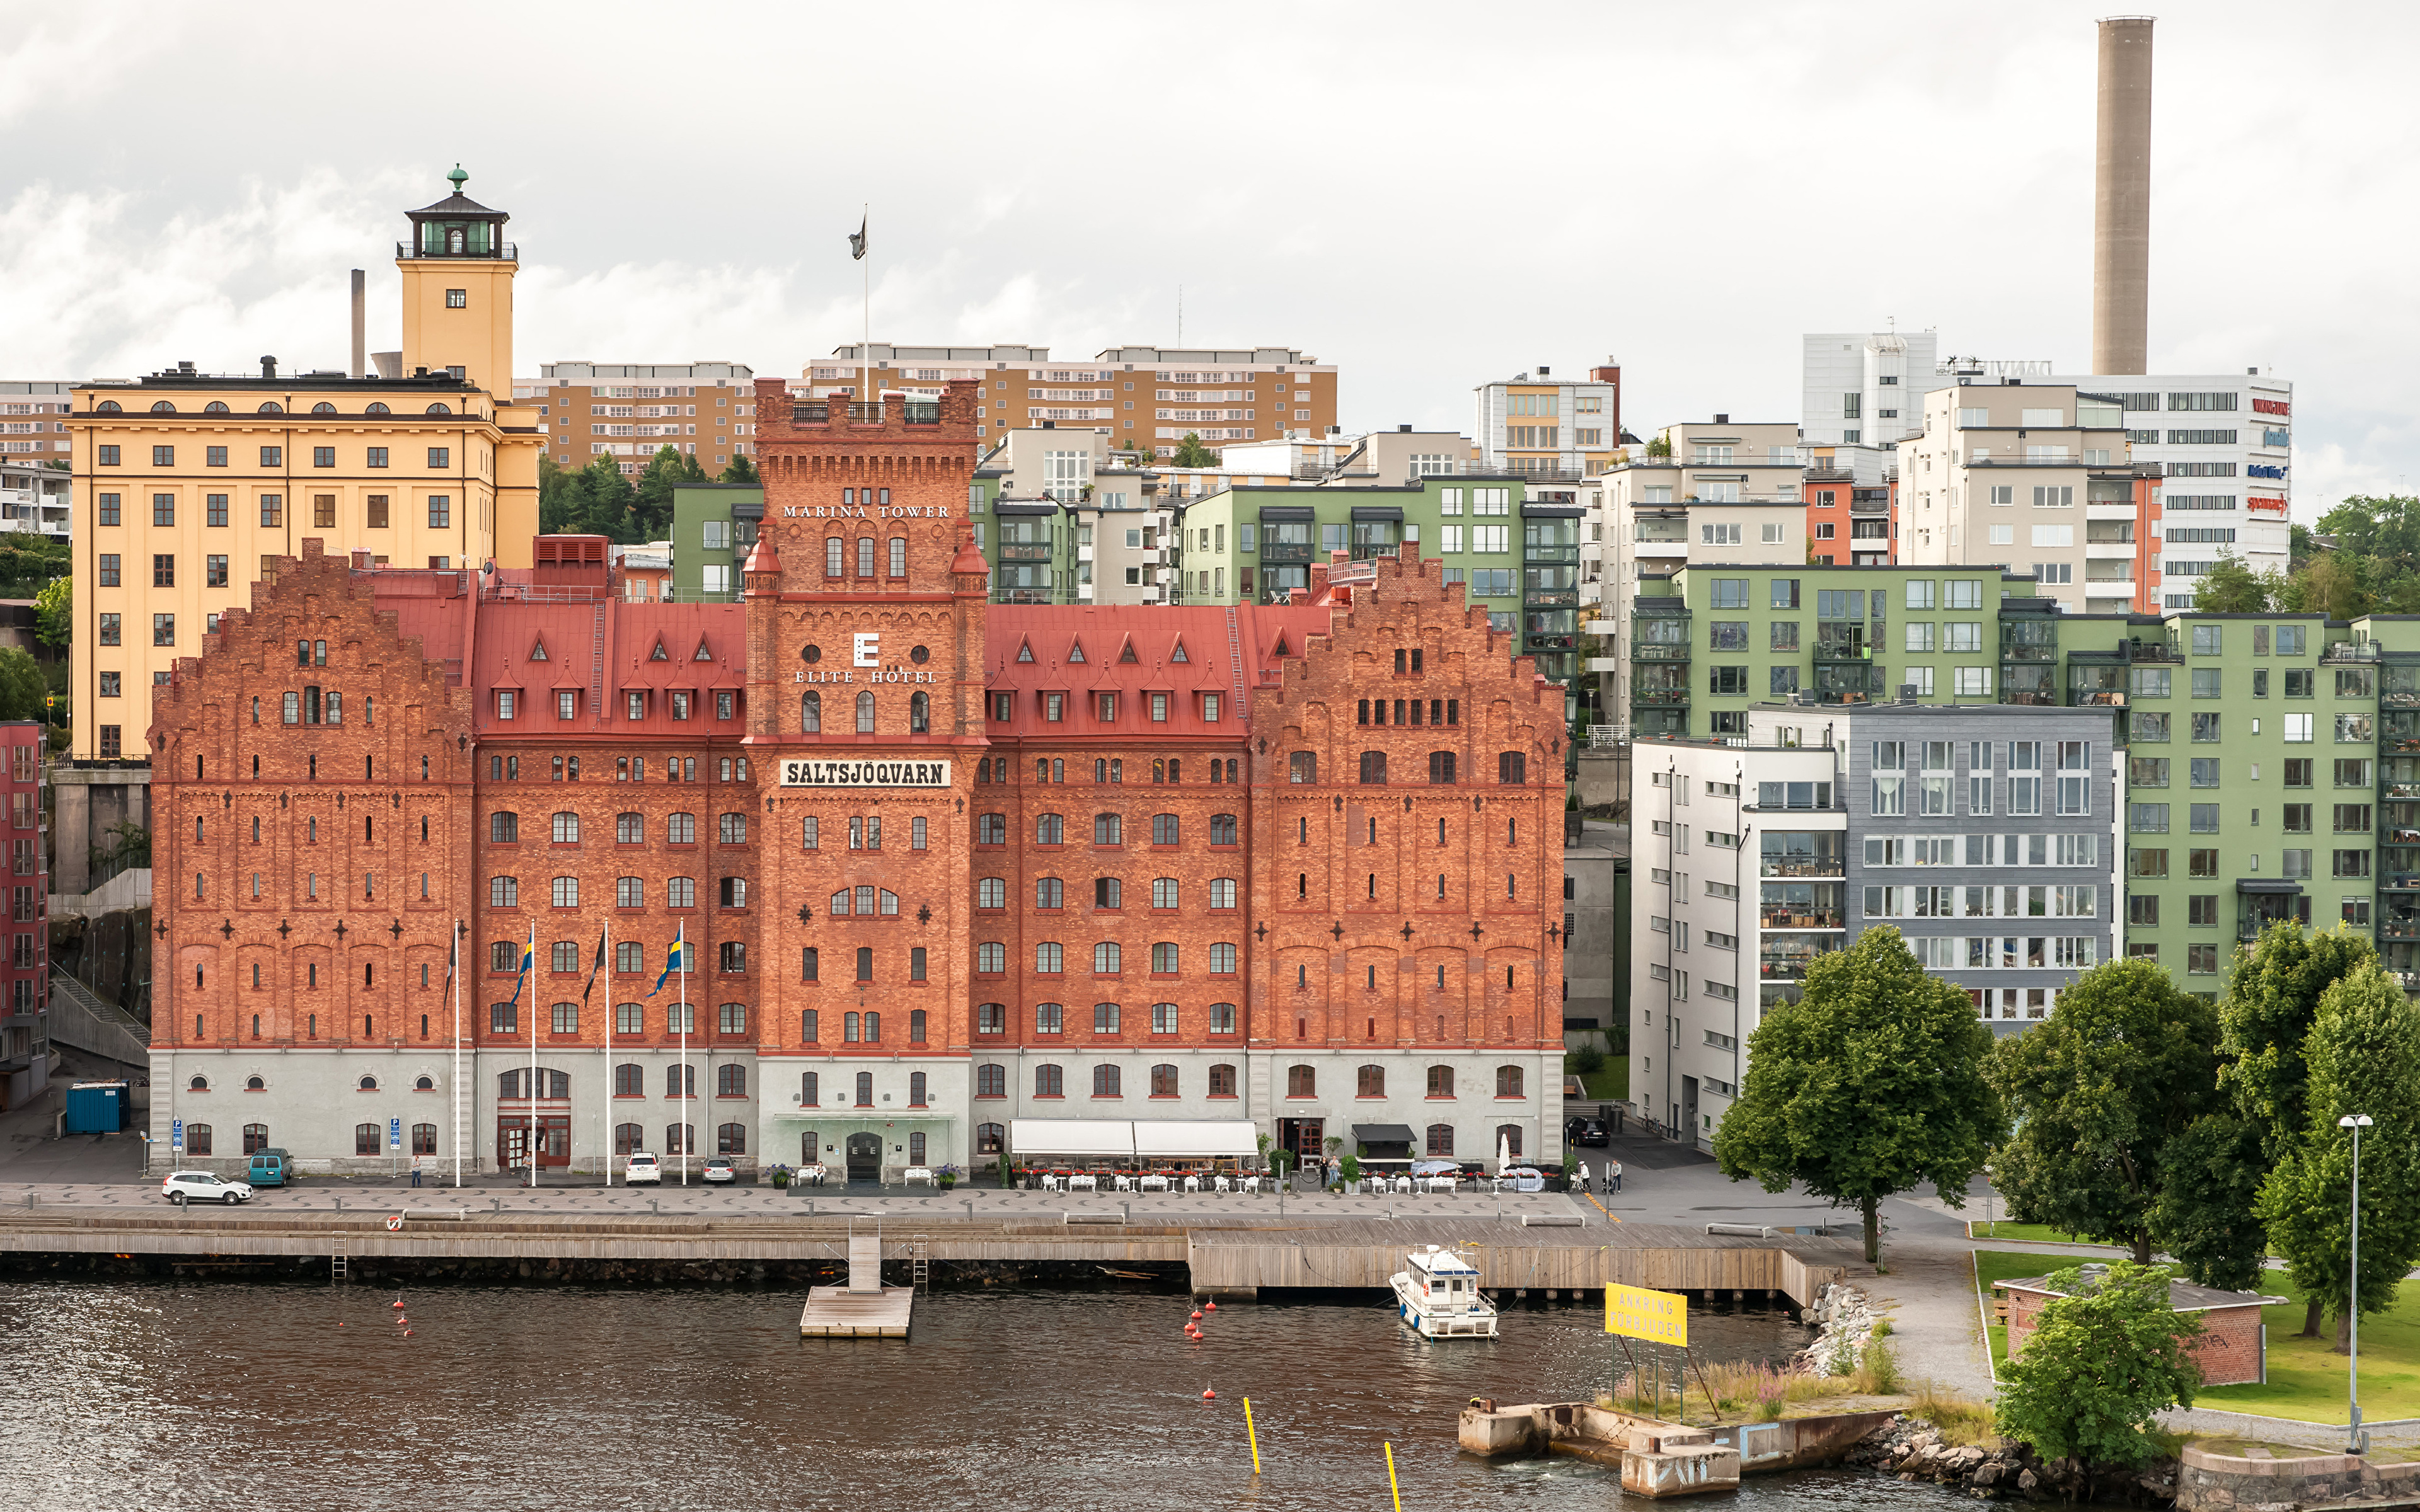 Pictures Stockholm Sweden Bay Pier Cities Building 3840x2400 Berth Marinas Houses